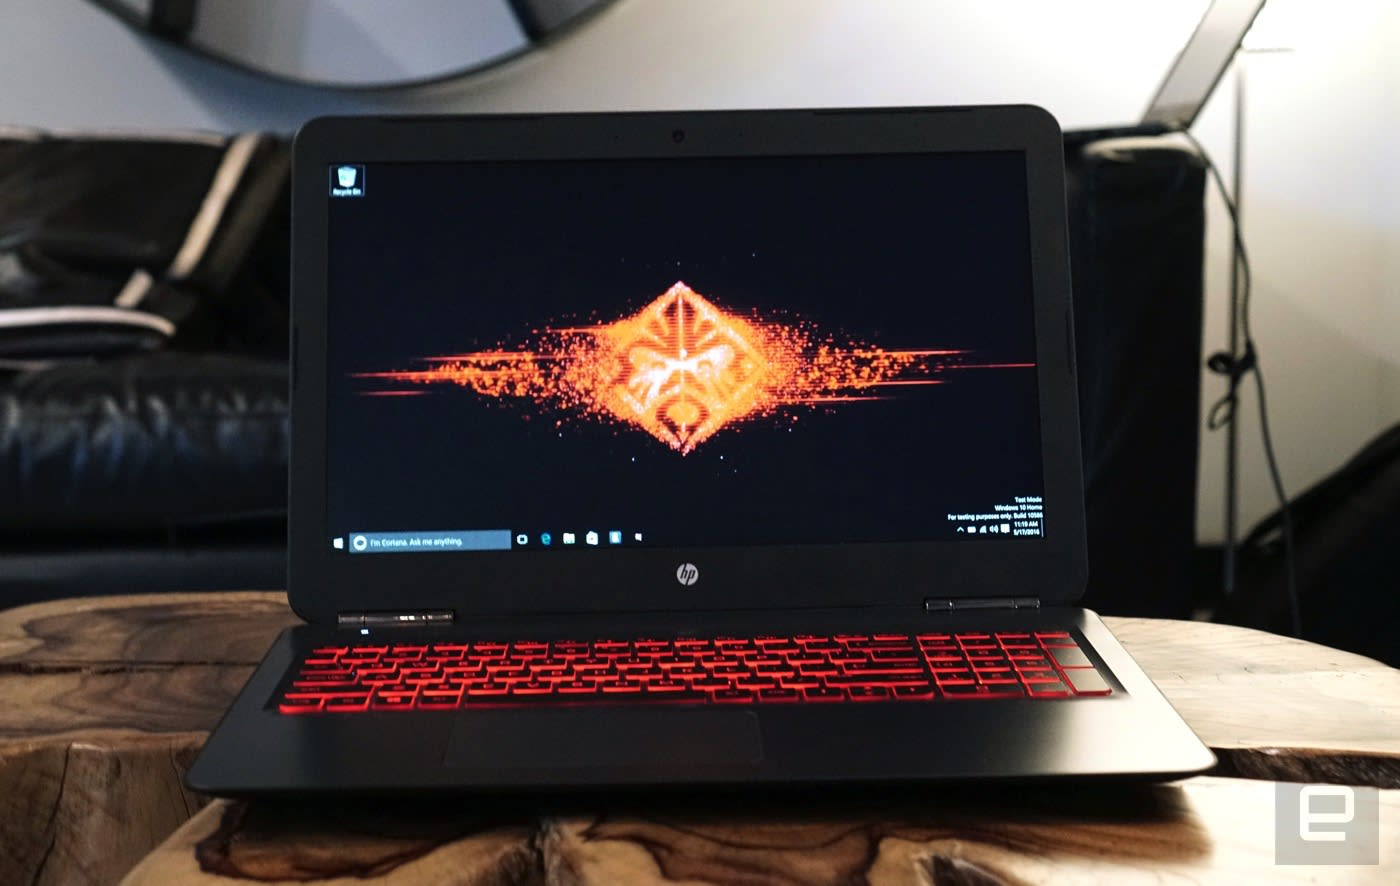 Hp goes big on gaming with new omen laptops and desktop for Portent vs omen